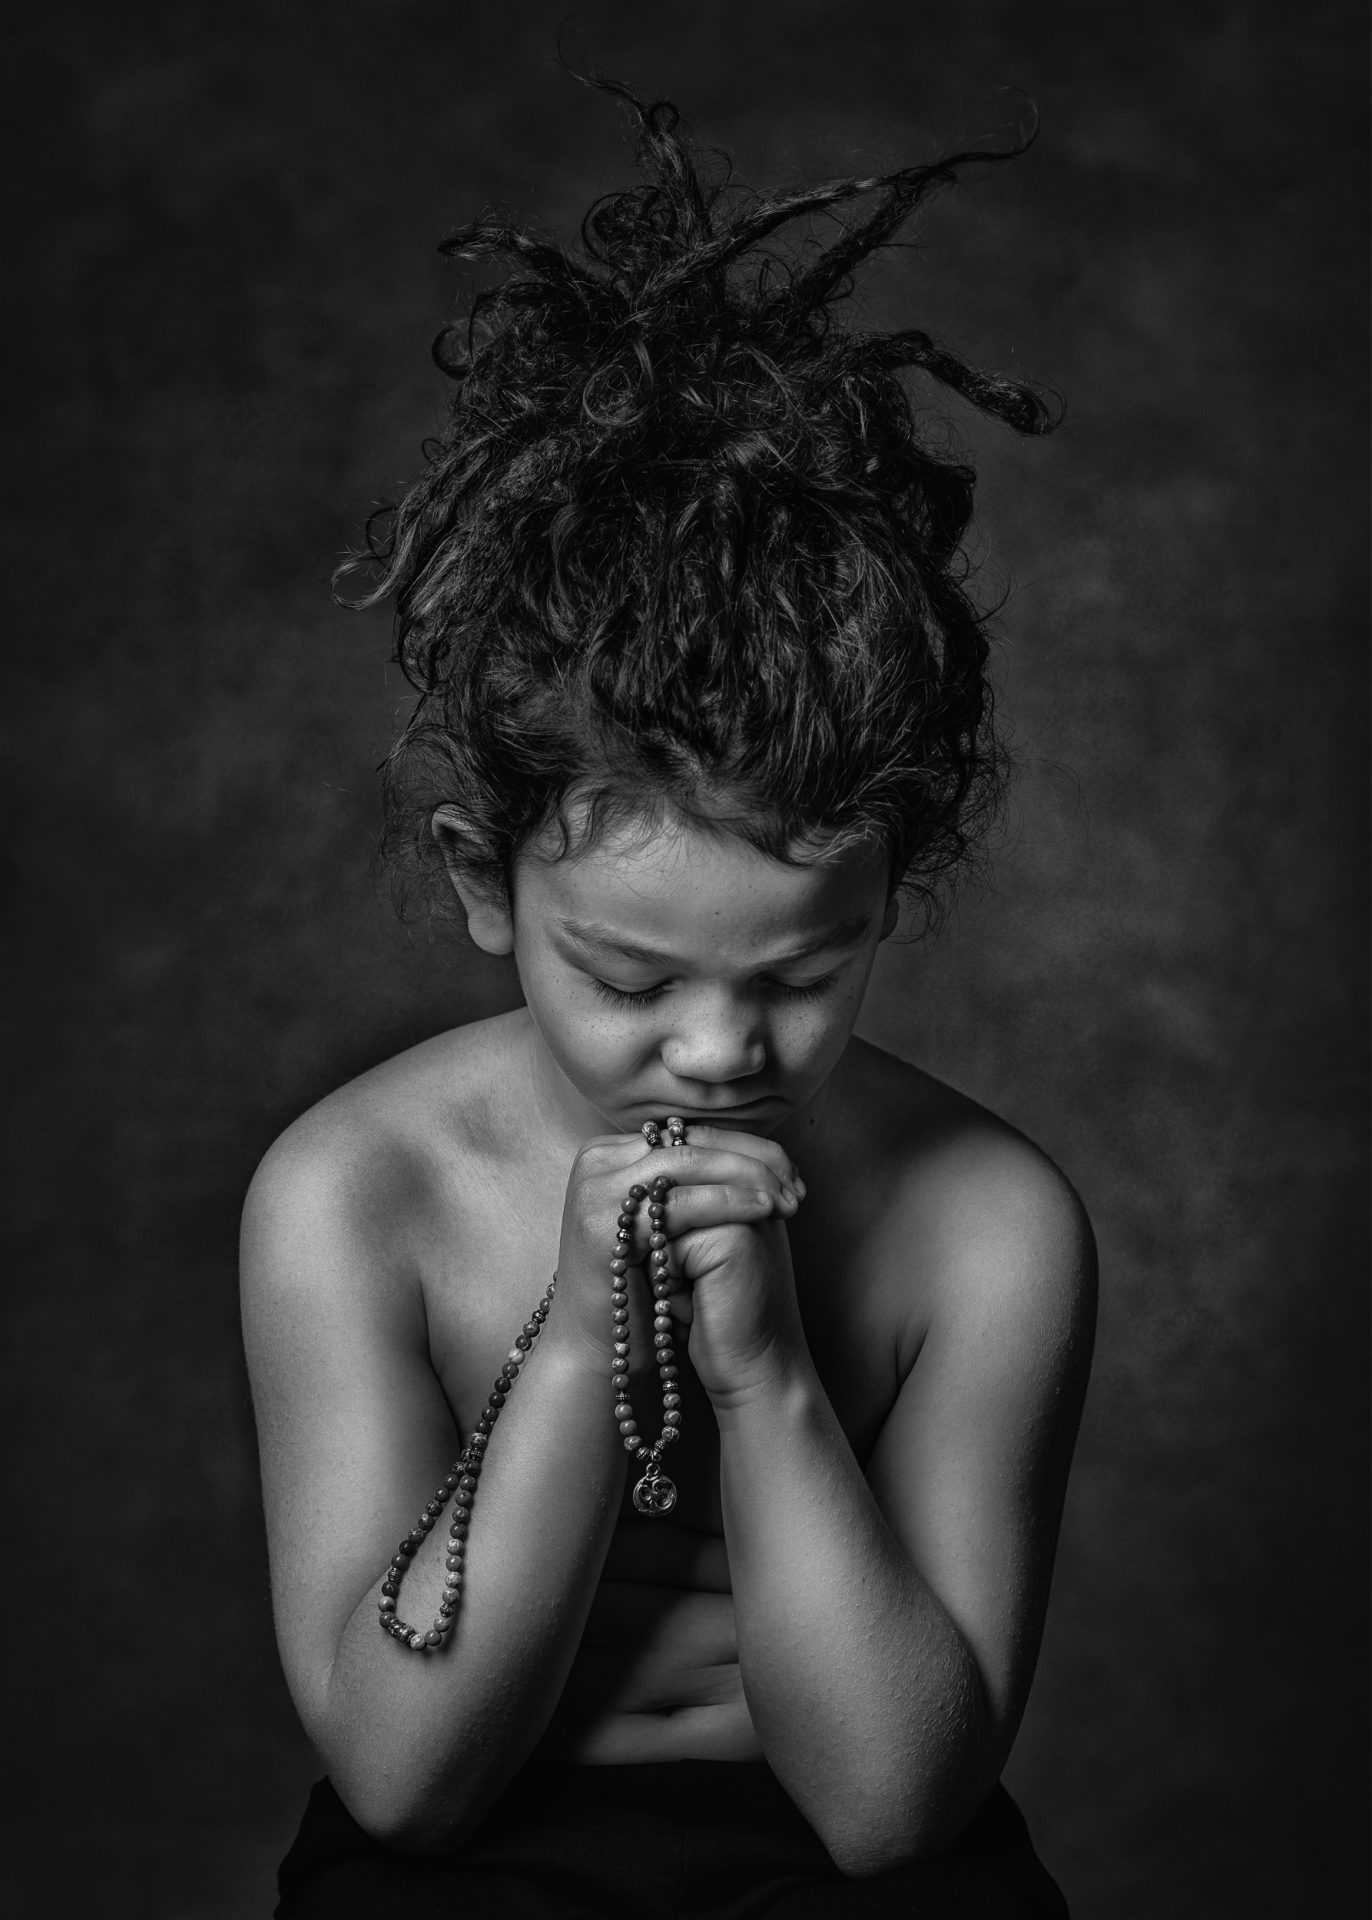 Award winning portrait of a 6 year old little boy praying in Cheshire